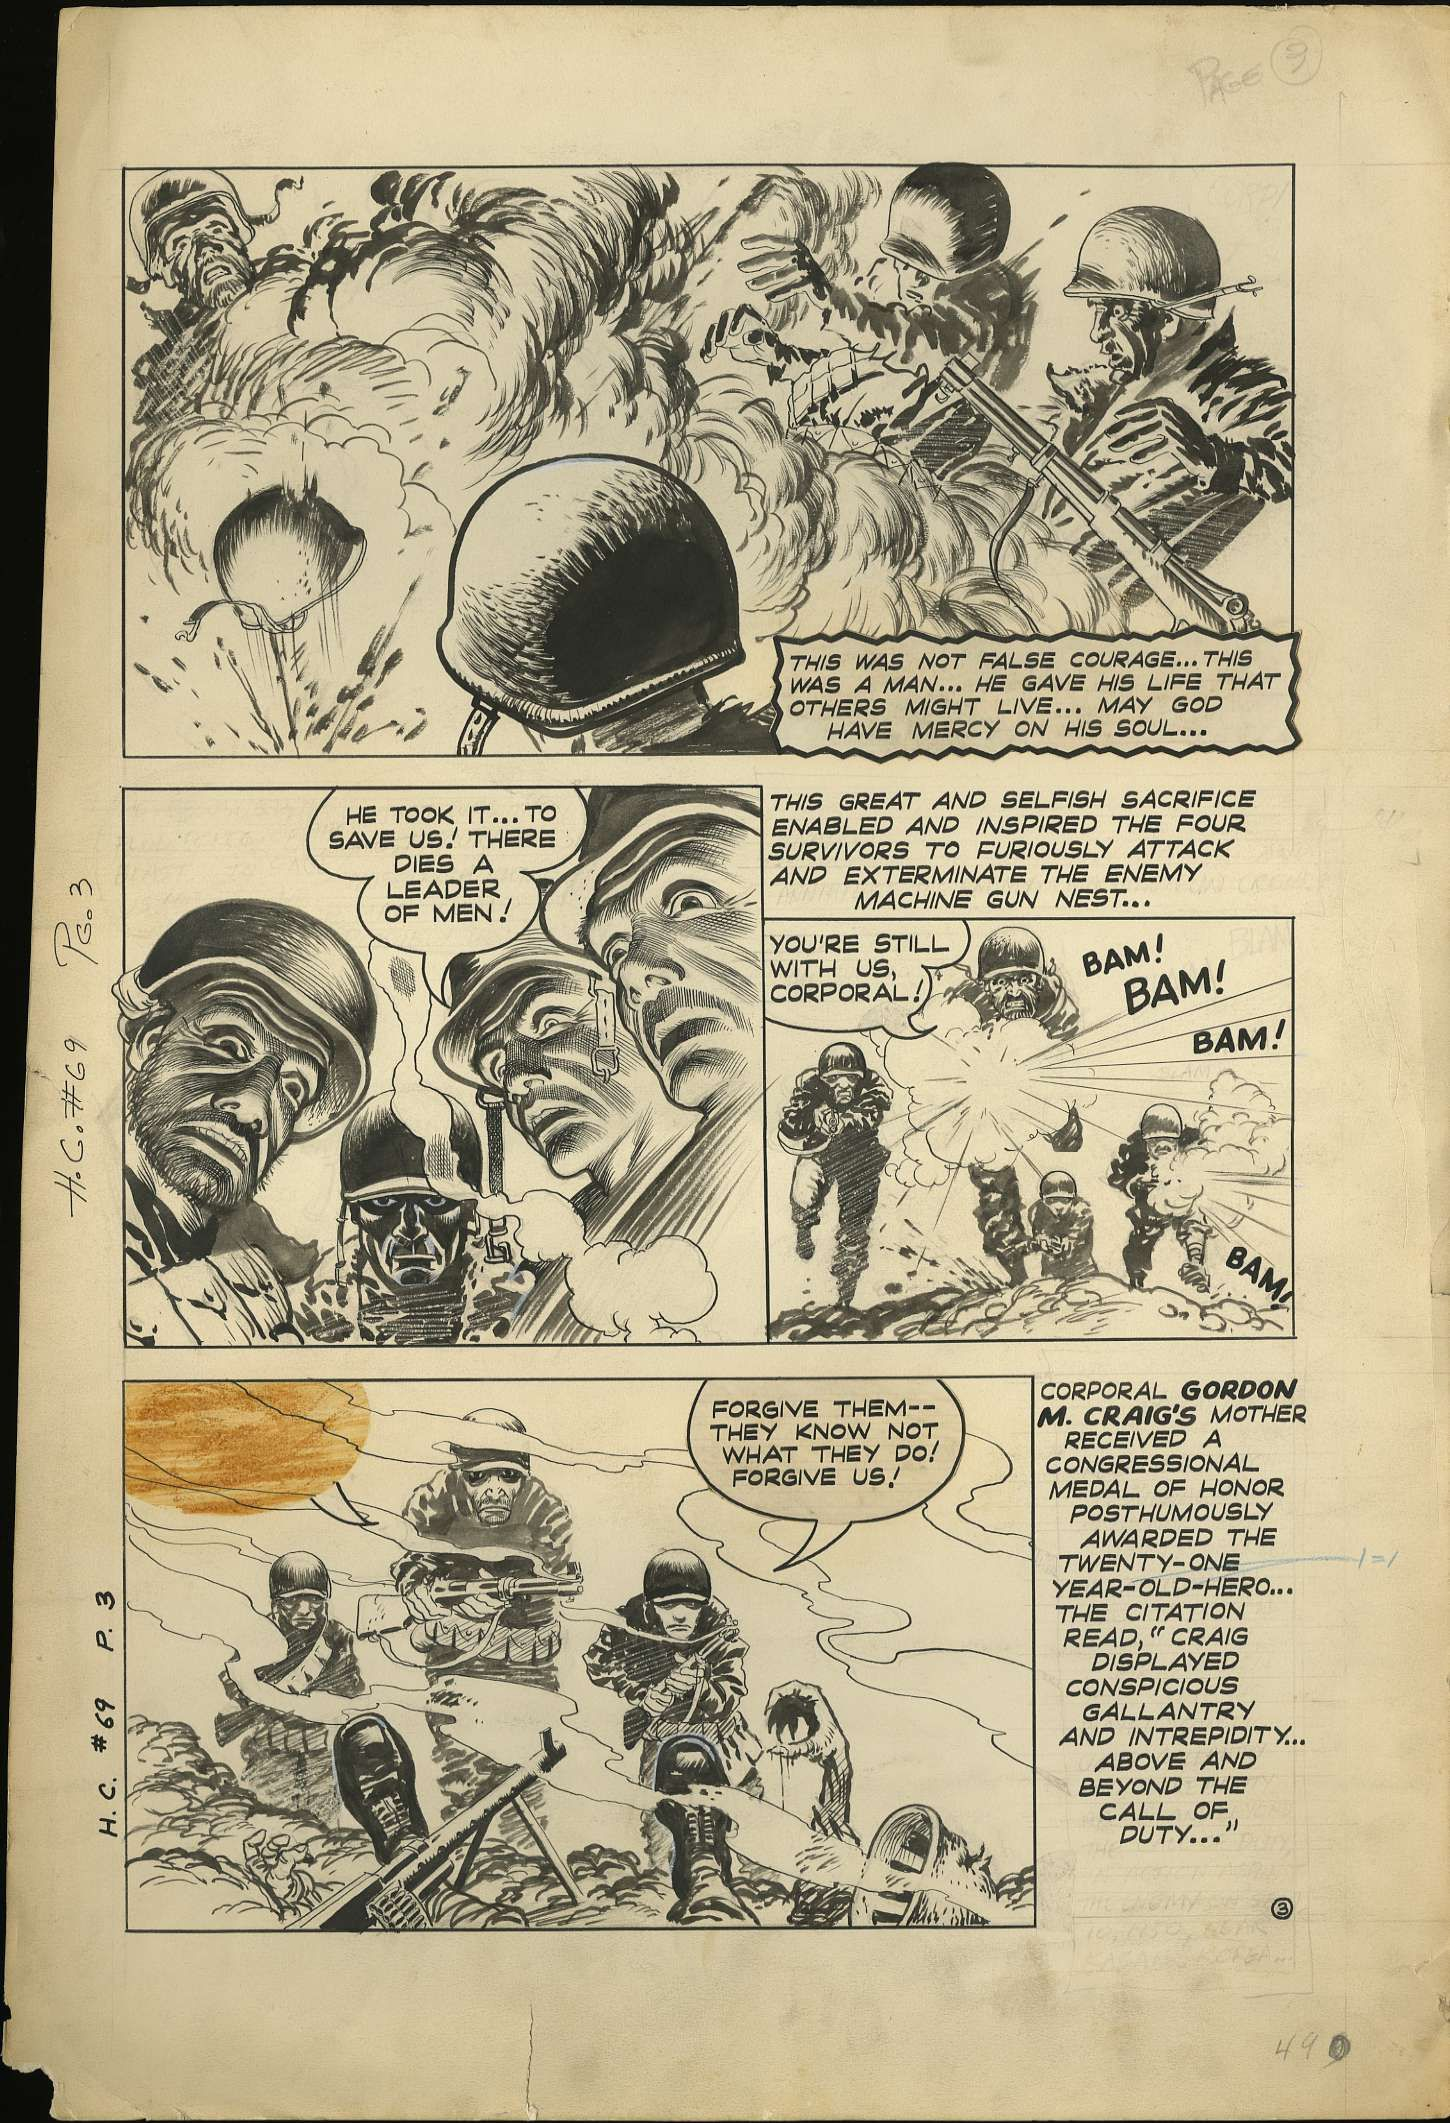 heroic comics beyond the call of duty complete original  heroic comics 69 beyond the call of duty complete original 3 page story art page 2 eastern color nov 1951 james halperin private collecti